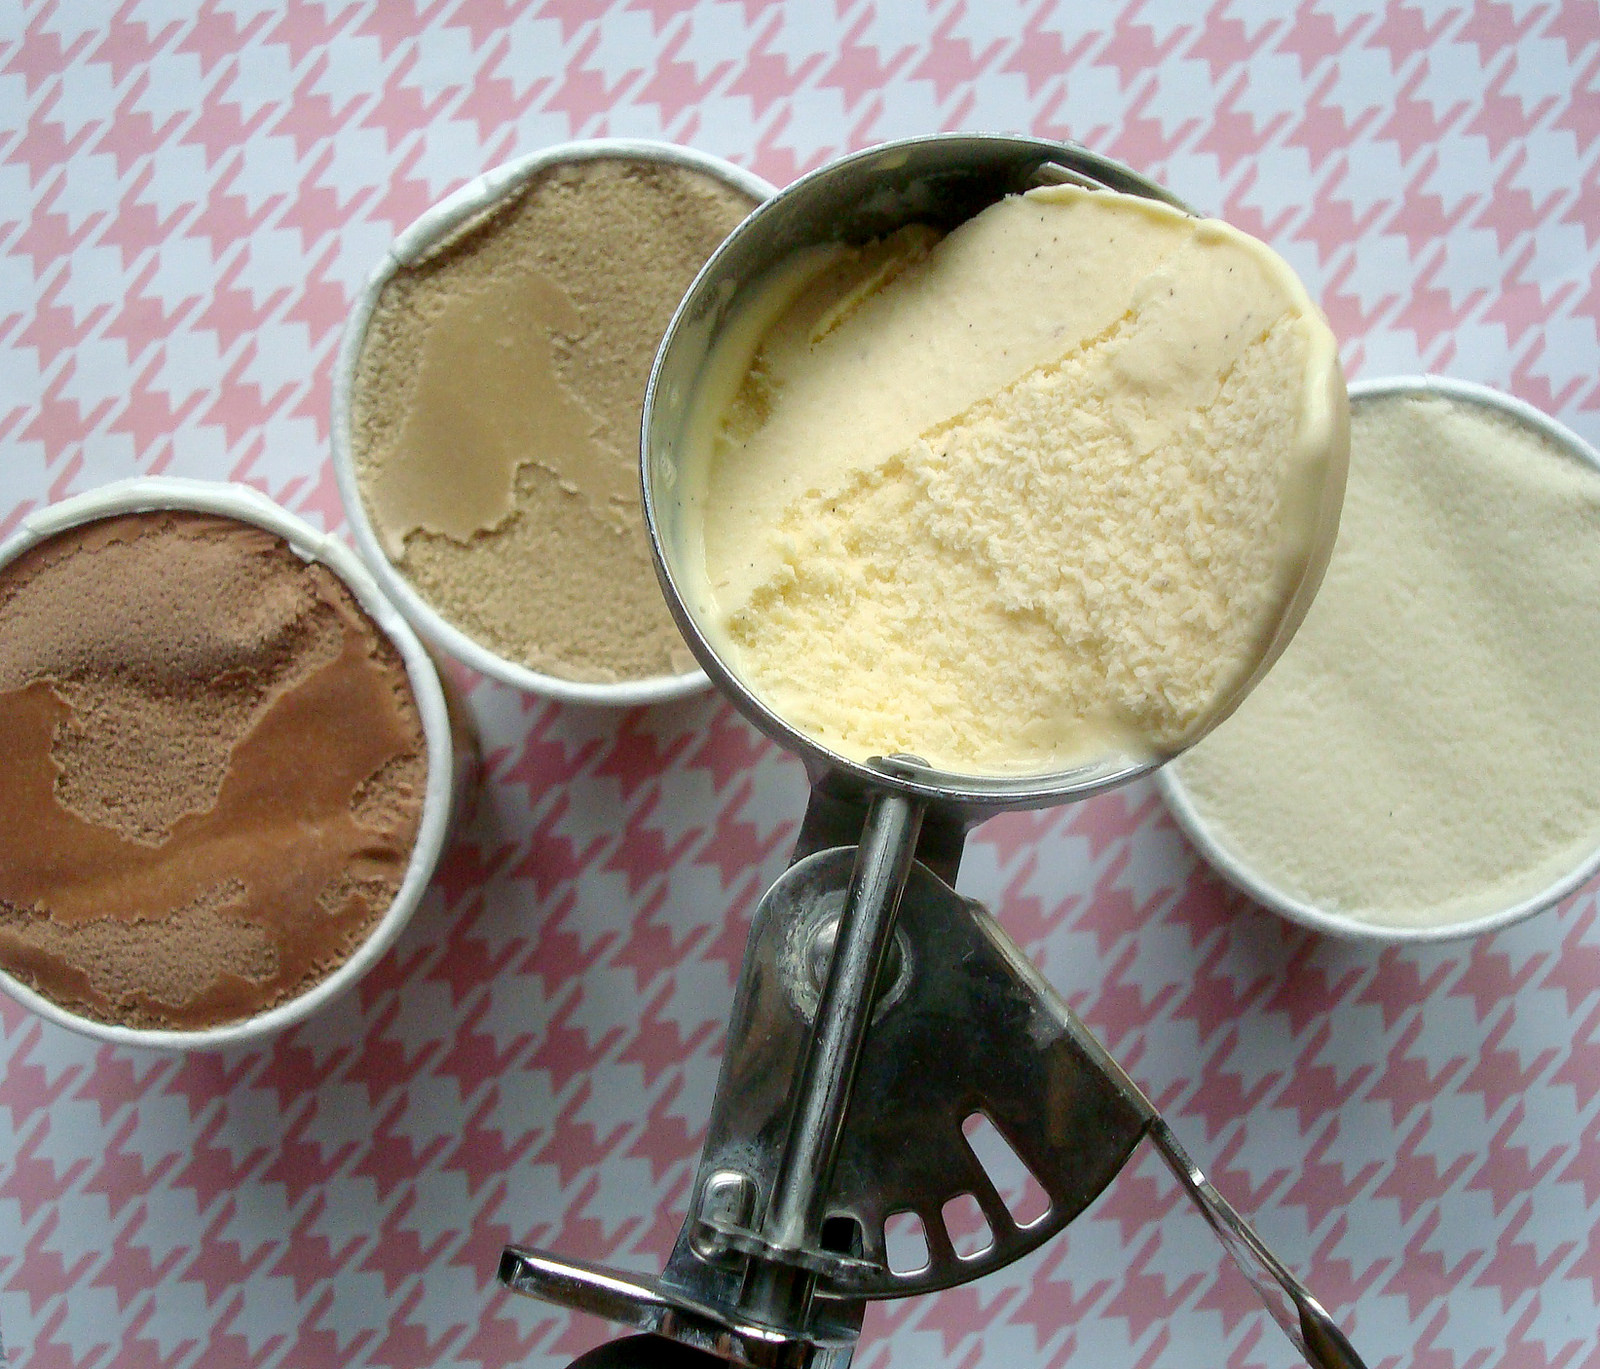 Ice cream in cake mix